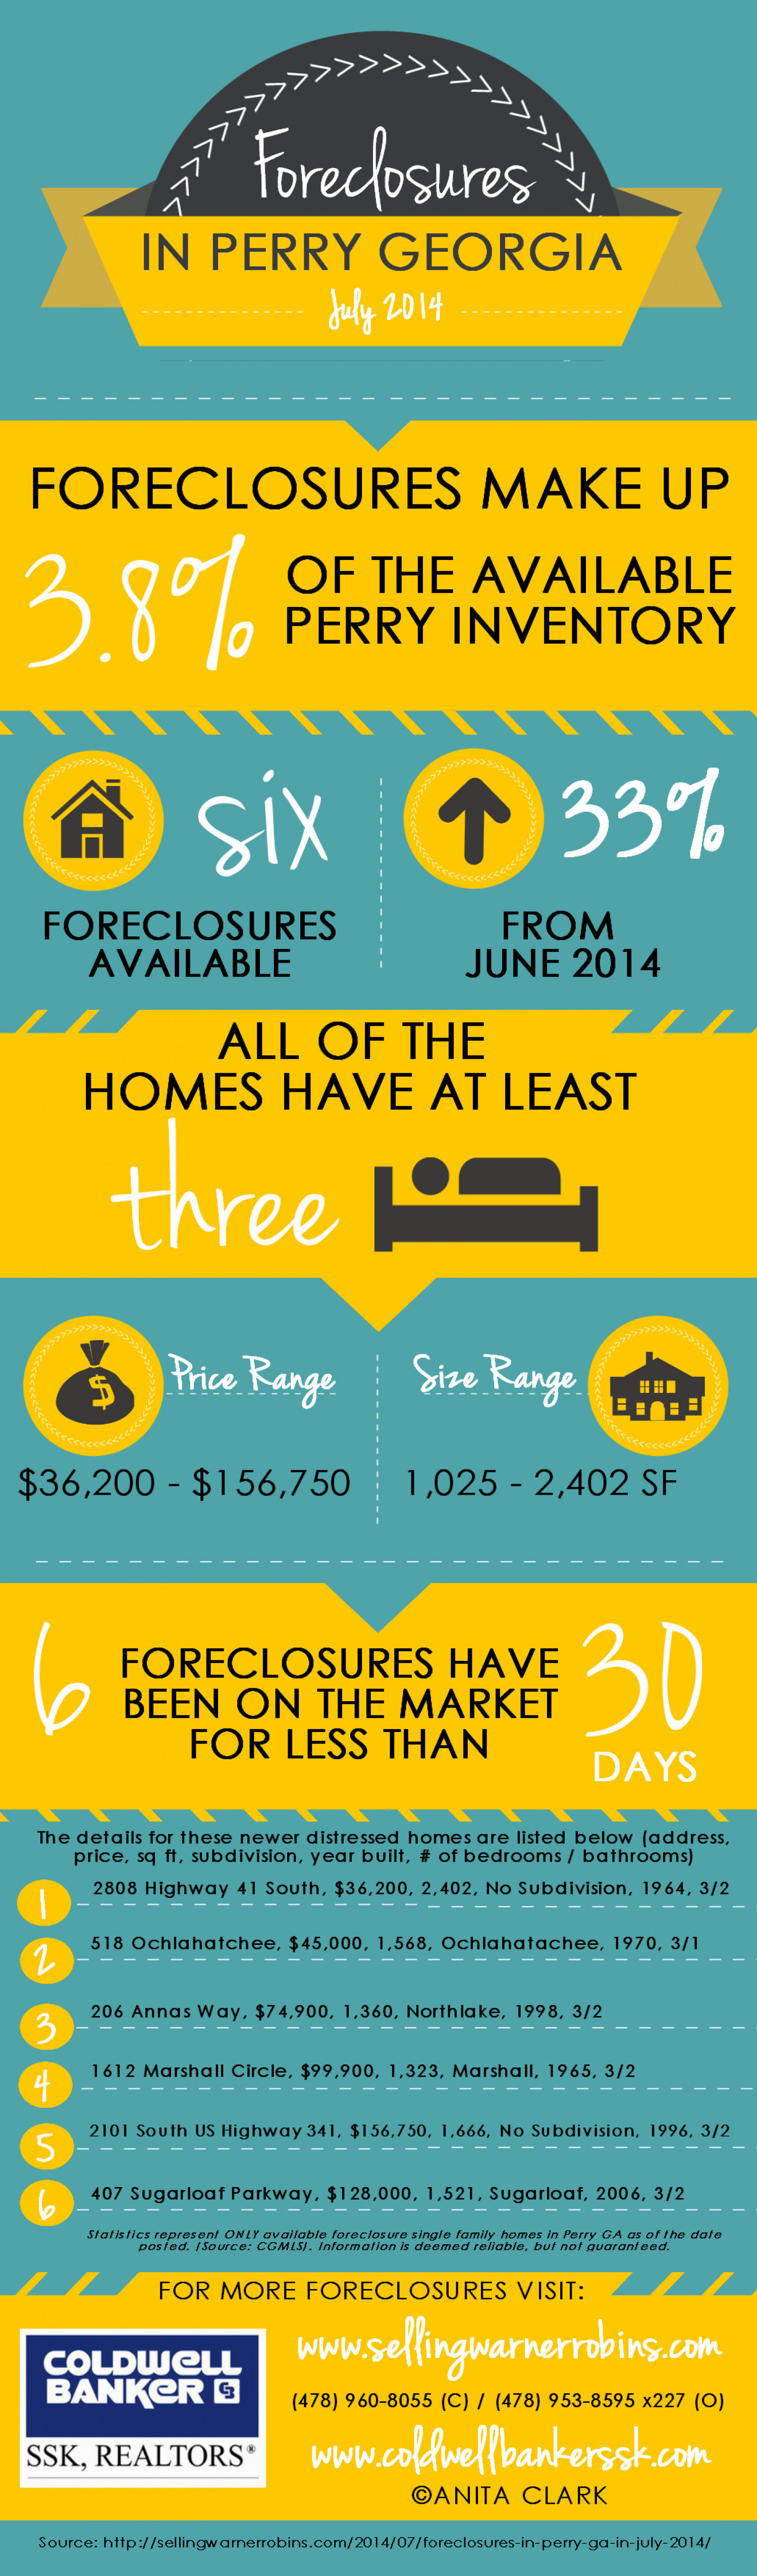 Foreclosures in Perry GA for July 2014 Infographic